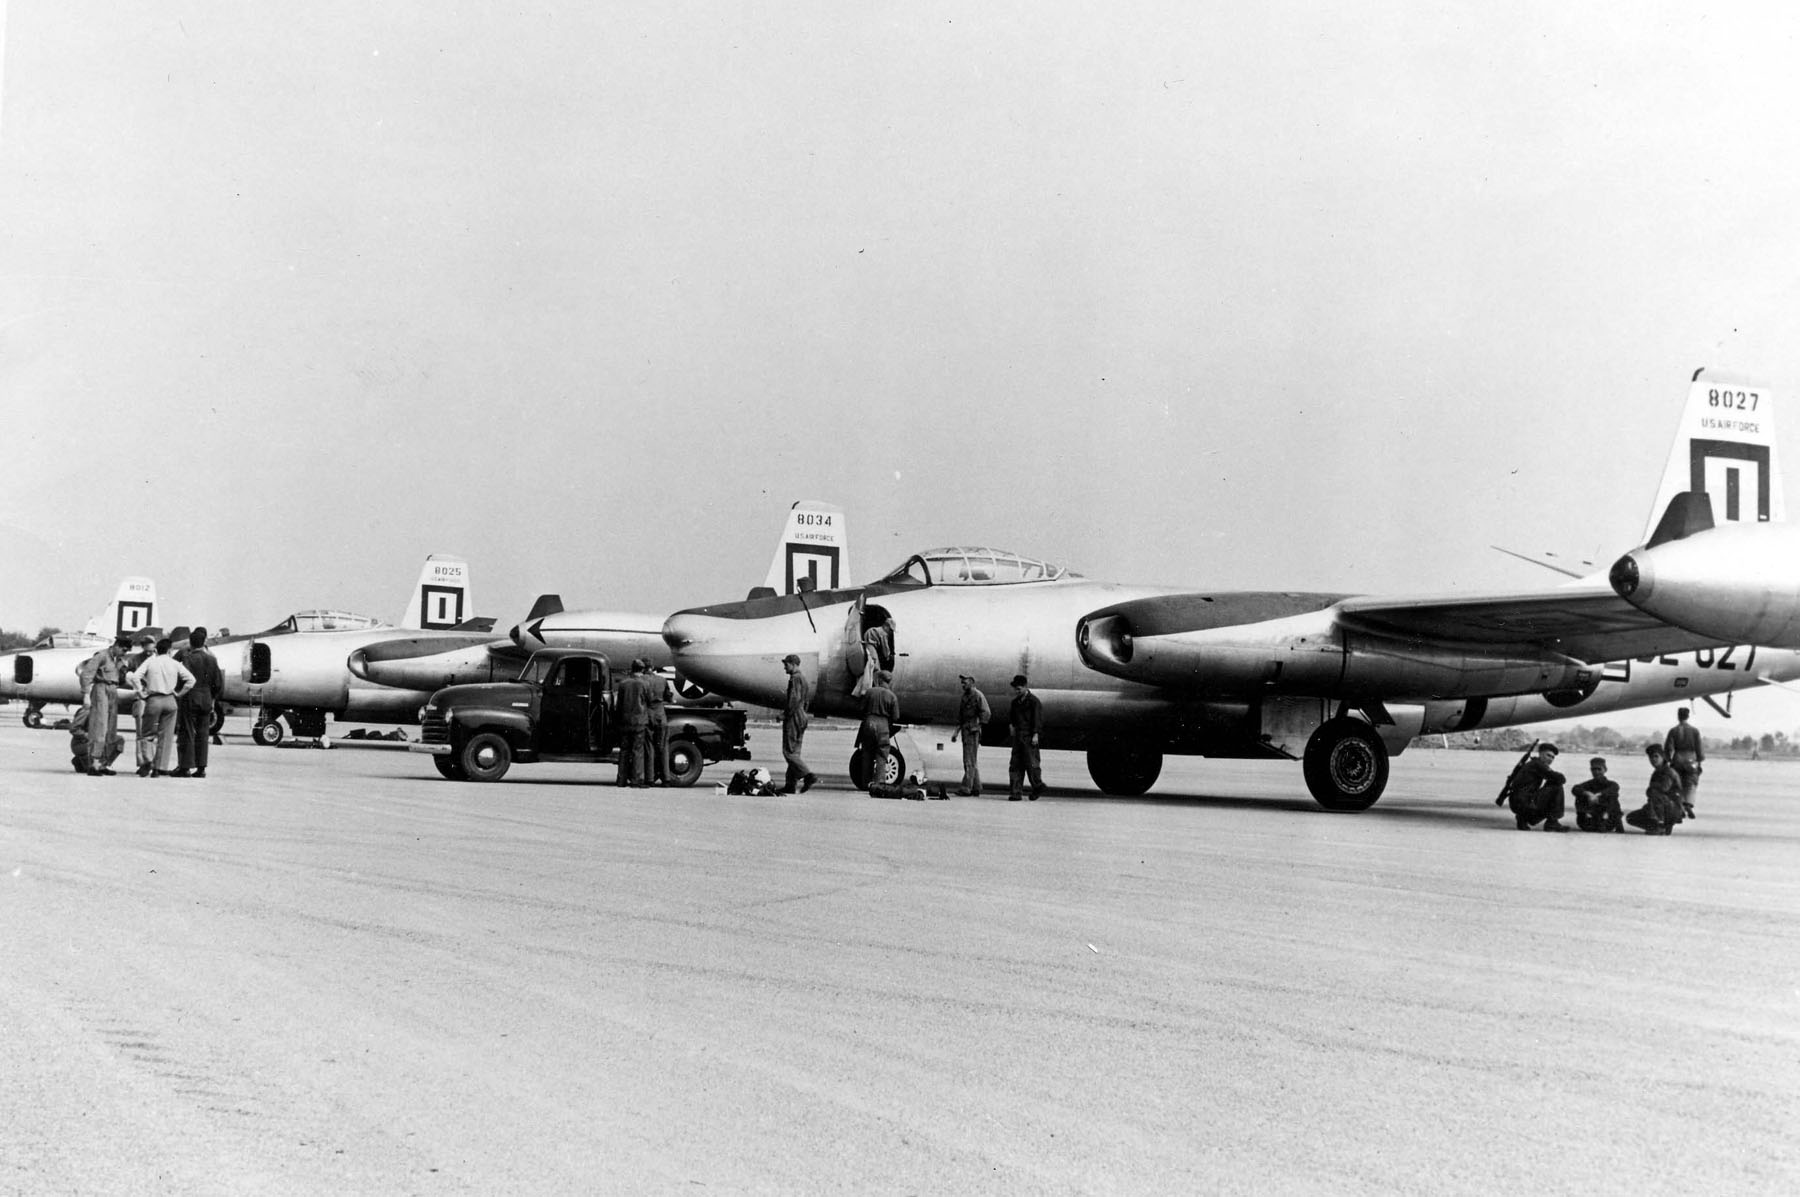 RB-45Cs on the flightline. Aircraft are (nearest to farthest) 48-027, 48-034, 48-025 and 48-012 of the 91st Strategic Reconnaissance Wing. (U.S. Air Force photo via Wikipedia)